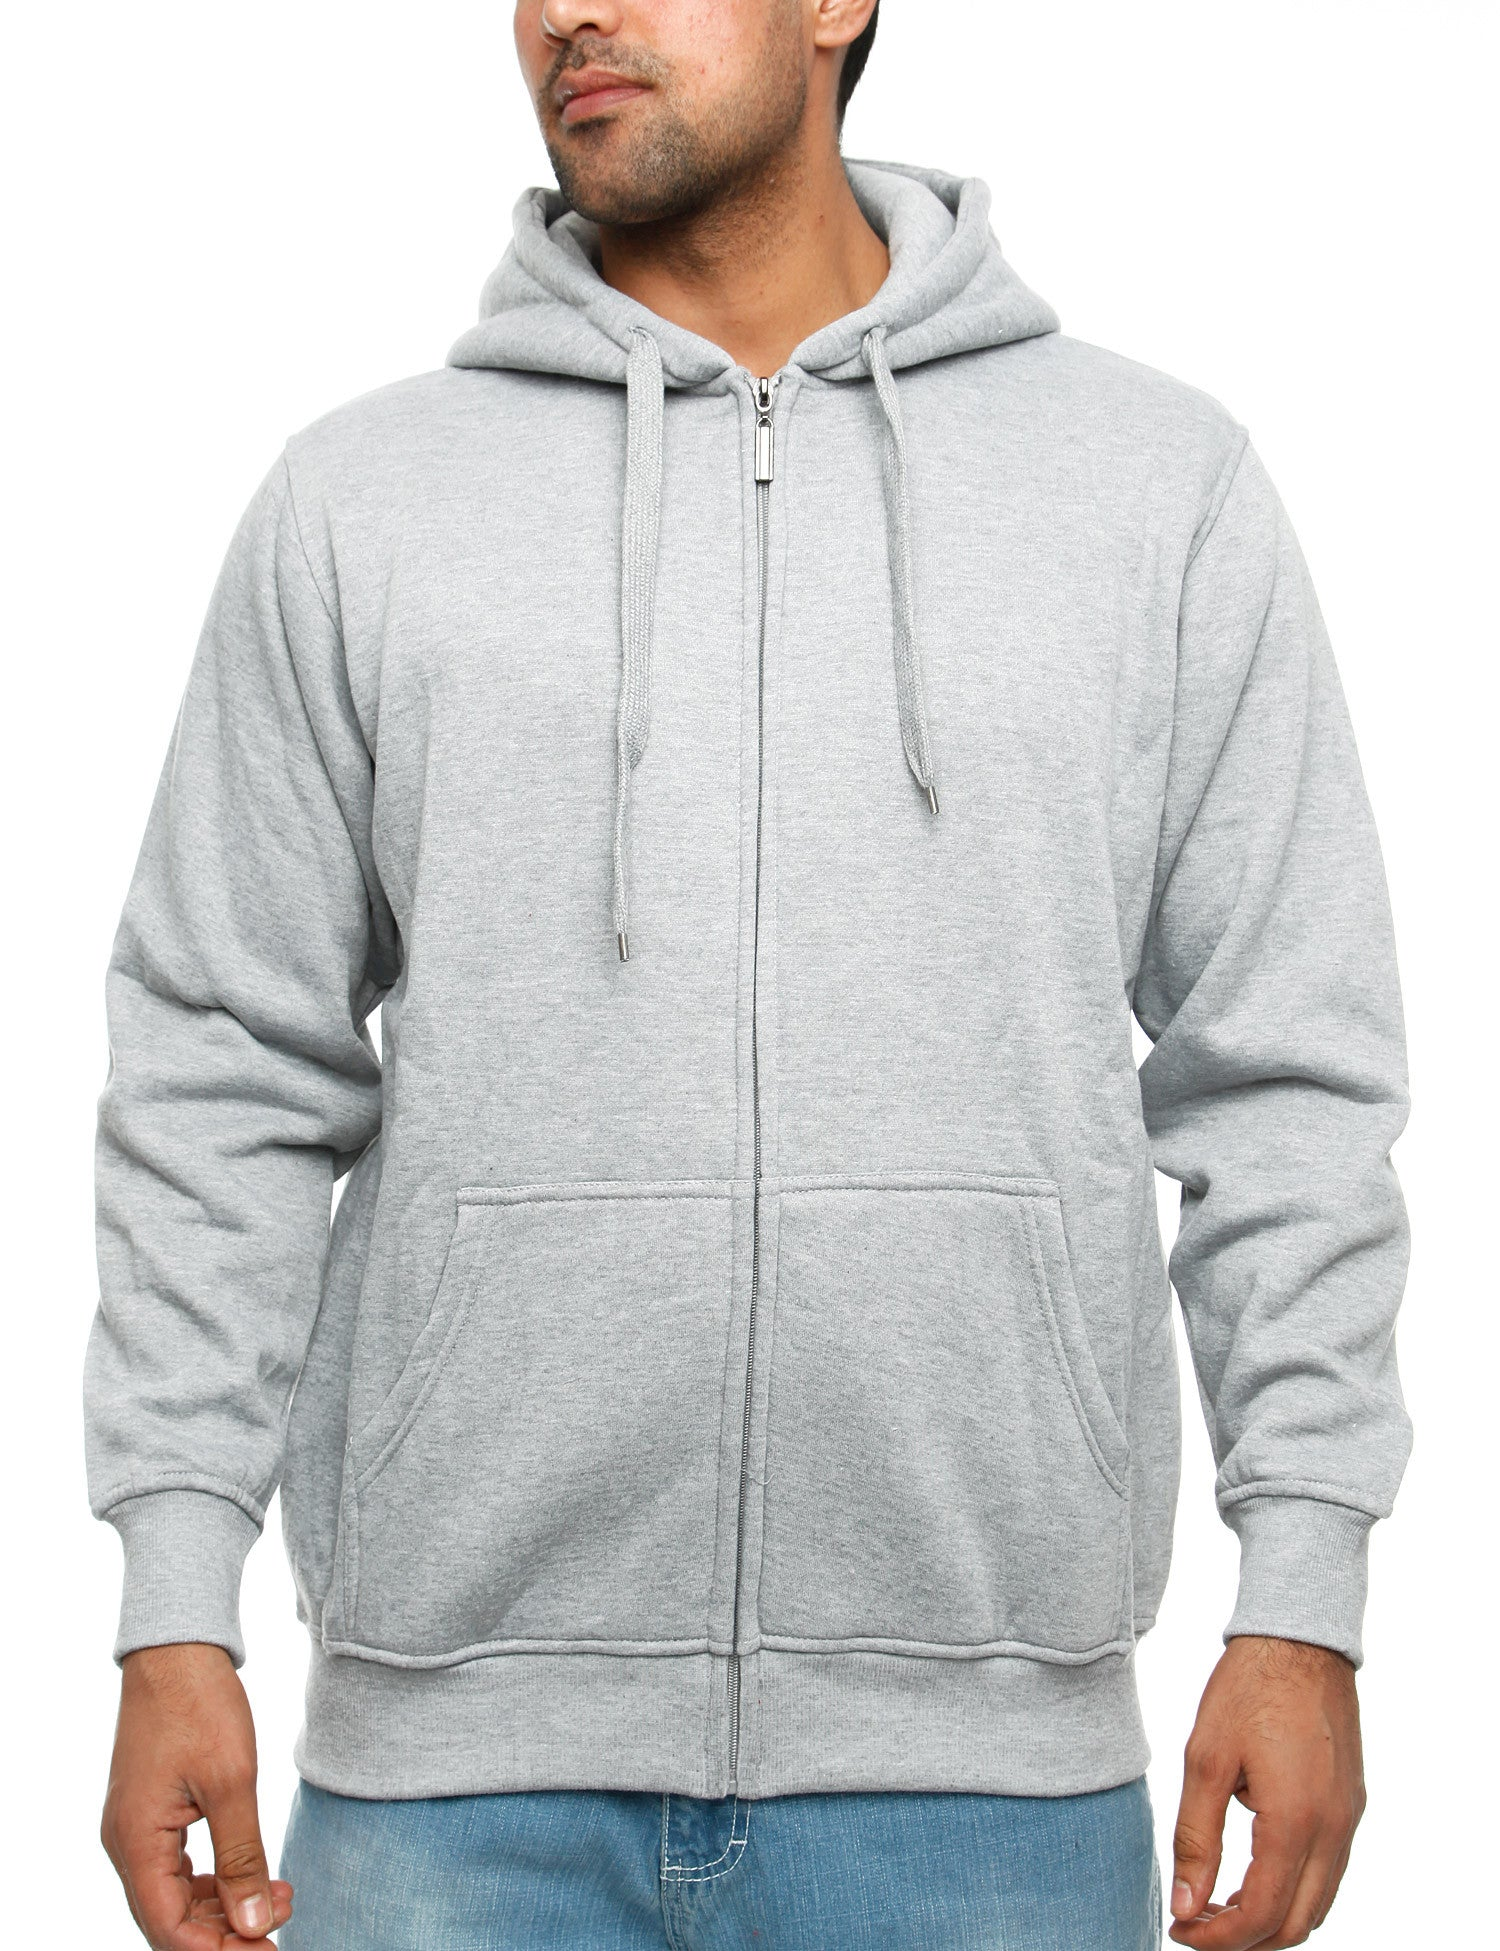 Townz Zip Hoody PS-033B Grey